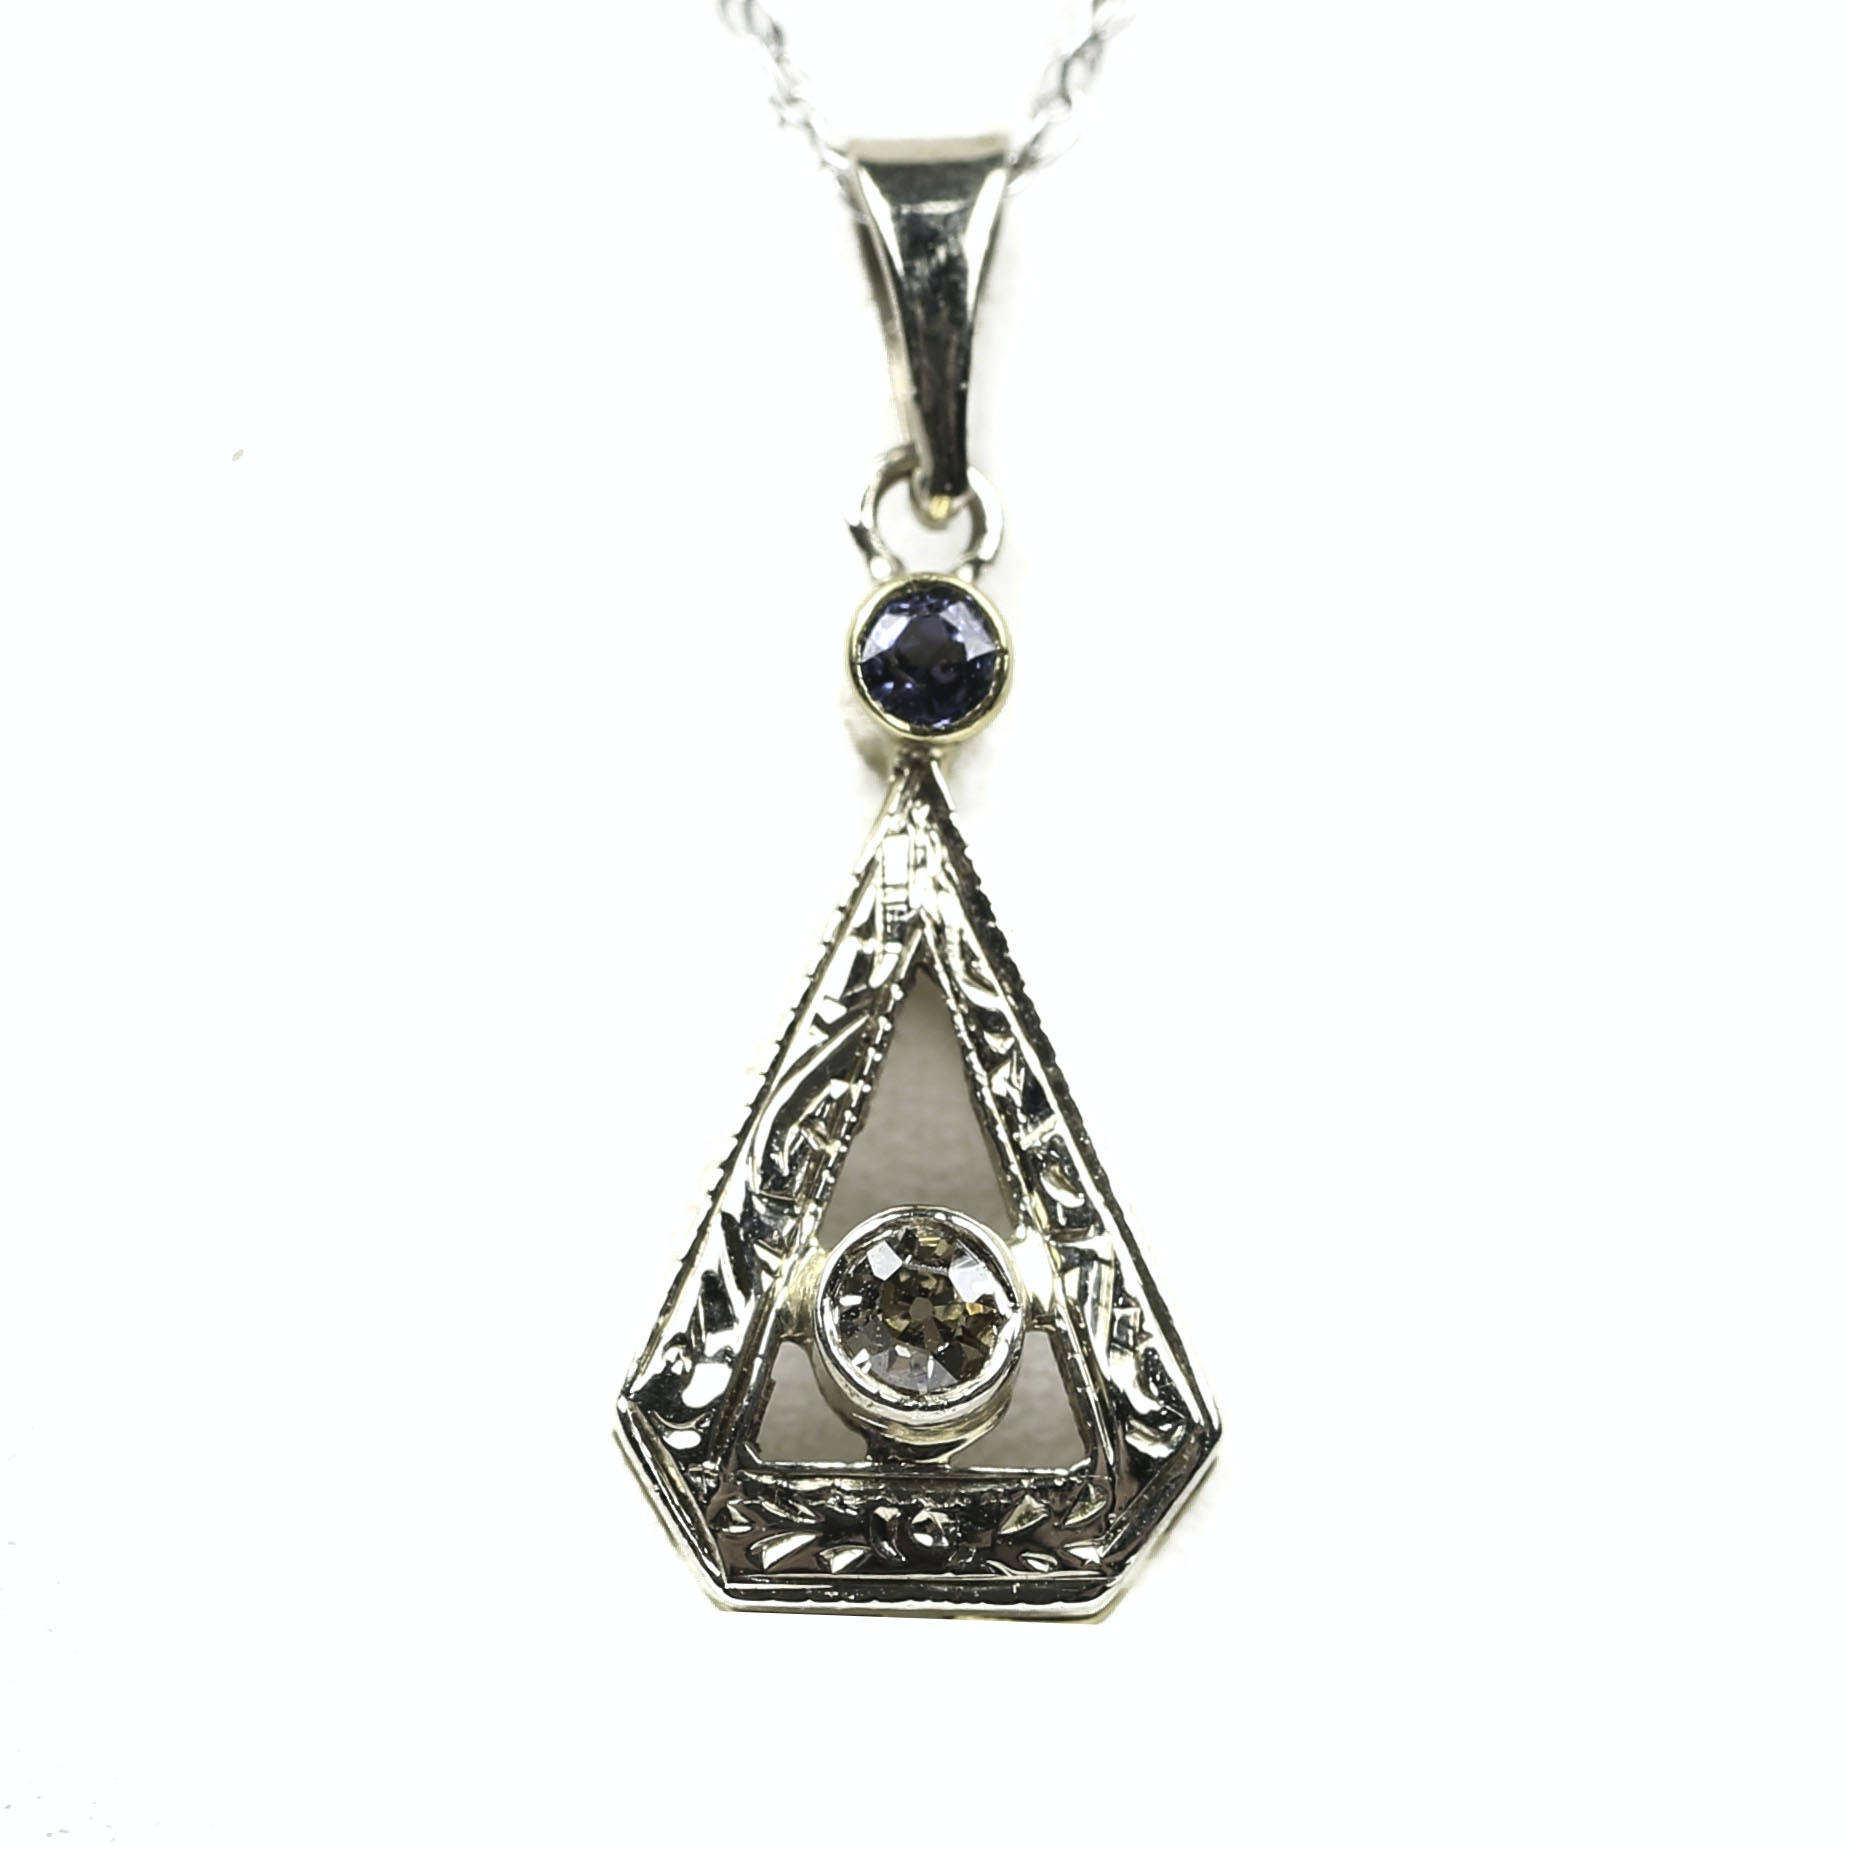 Art Deco 14K Yellow Gold Diamond and Sapphire Pendant on 10K White Gold Necklace